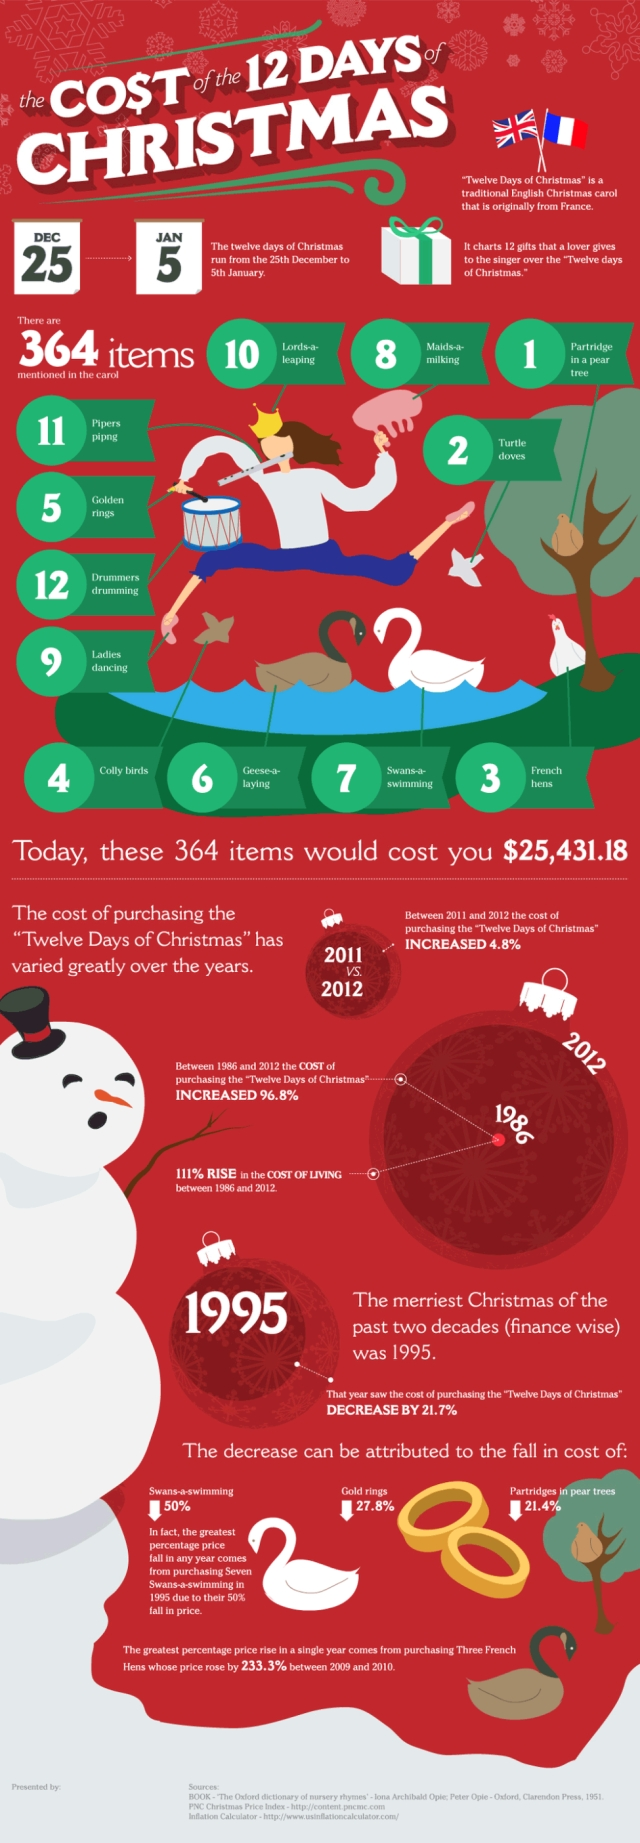 the cost of the 12 days of christmas 640 The Cost of the Twelve Days of Christmas [Animated Infographic]